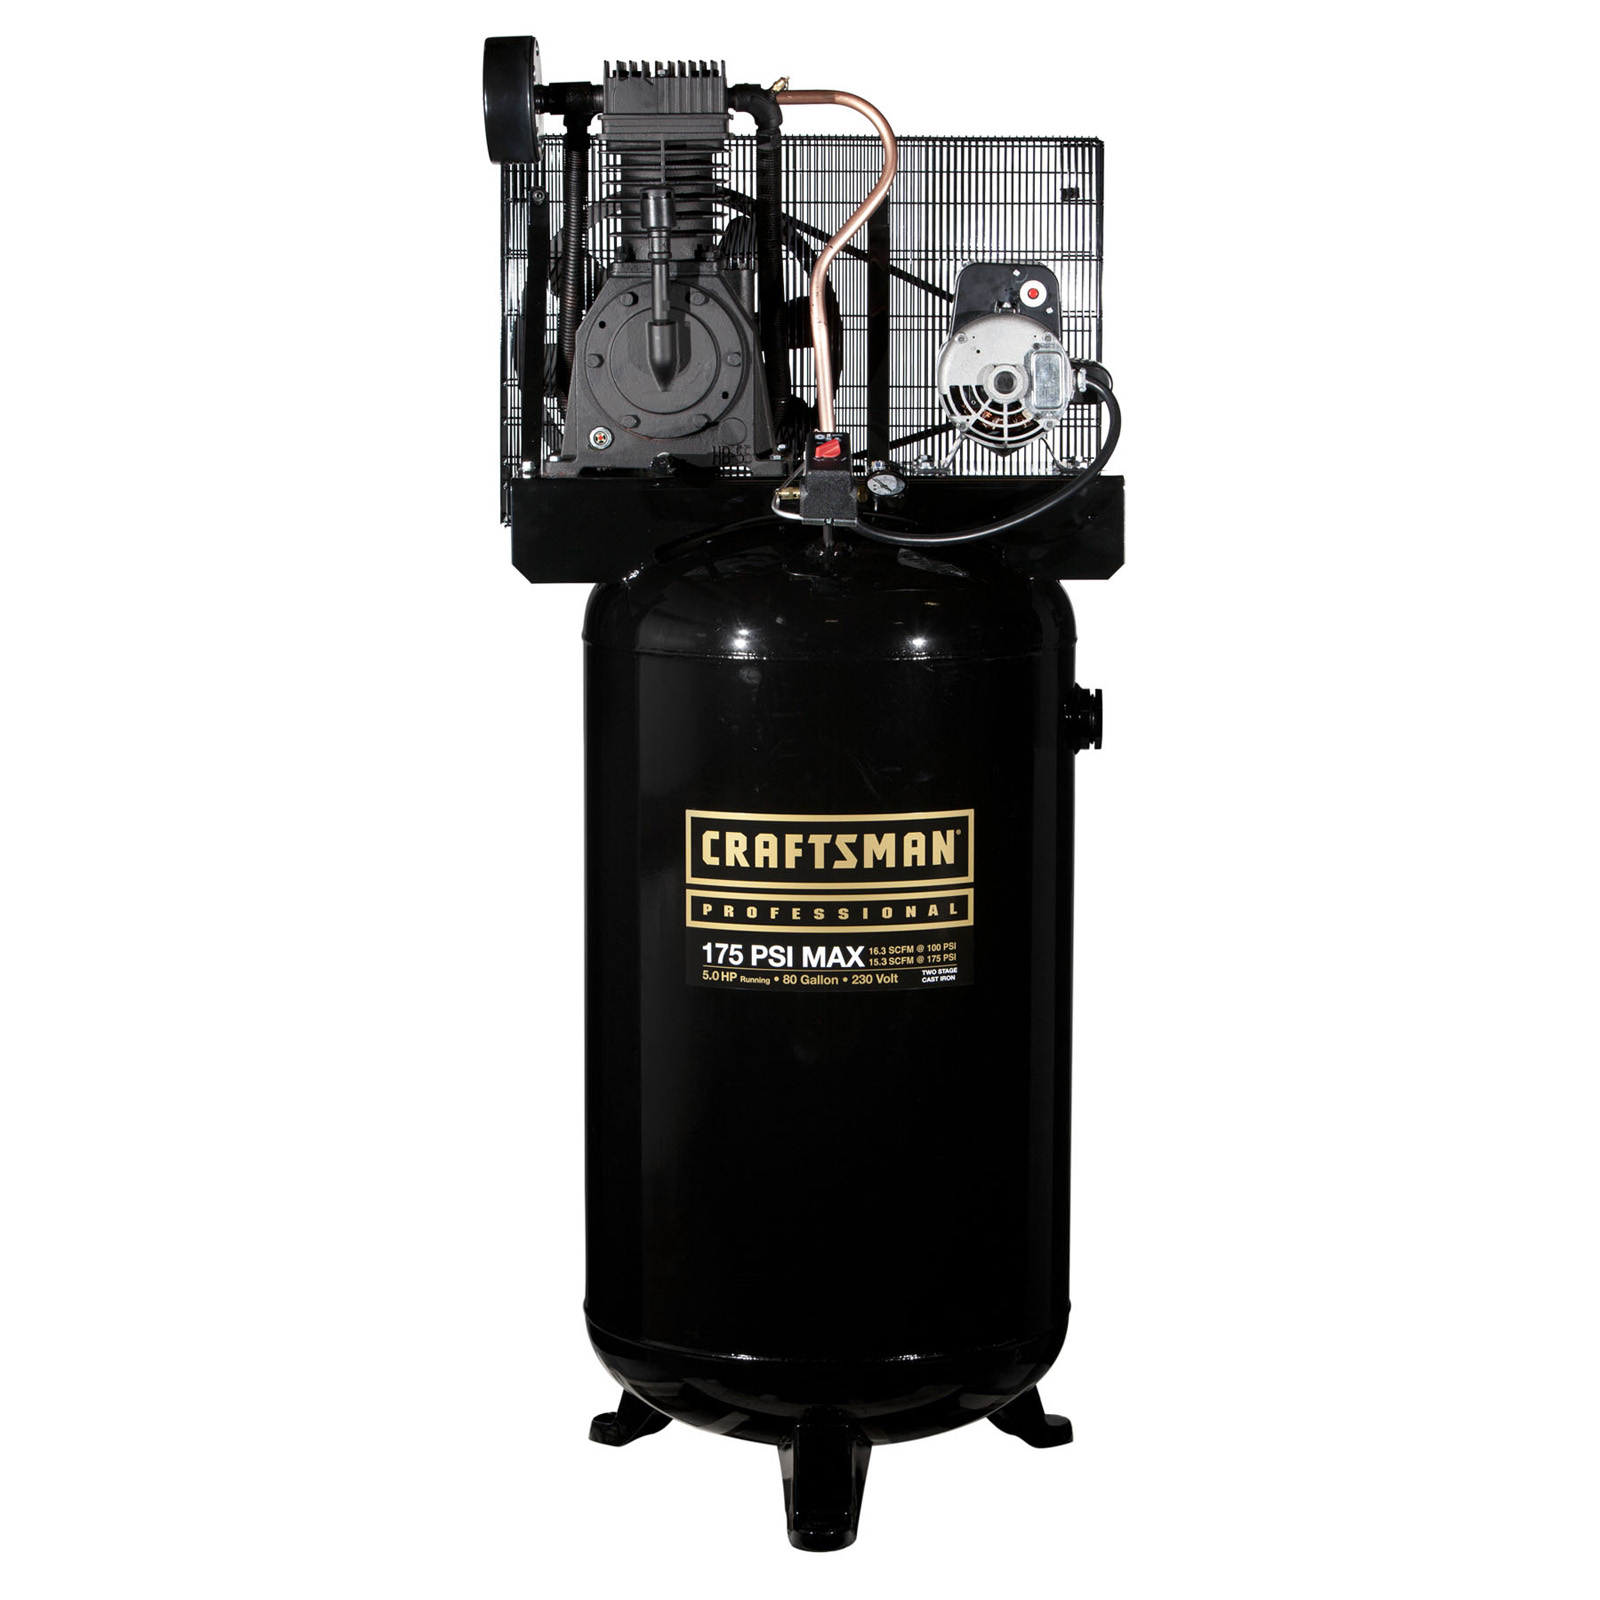 Craftsman Professional 80 Gallon 5 Rhp Oil-lubricated